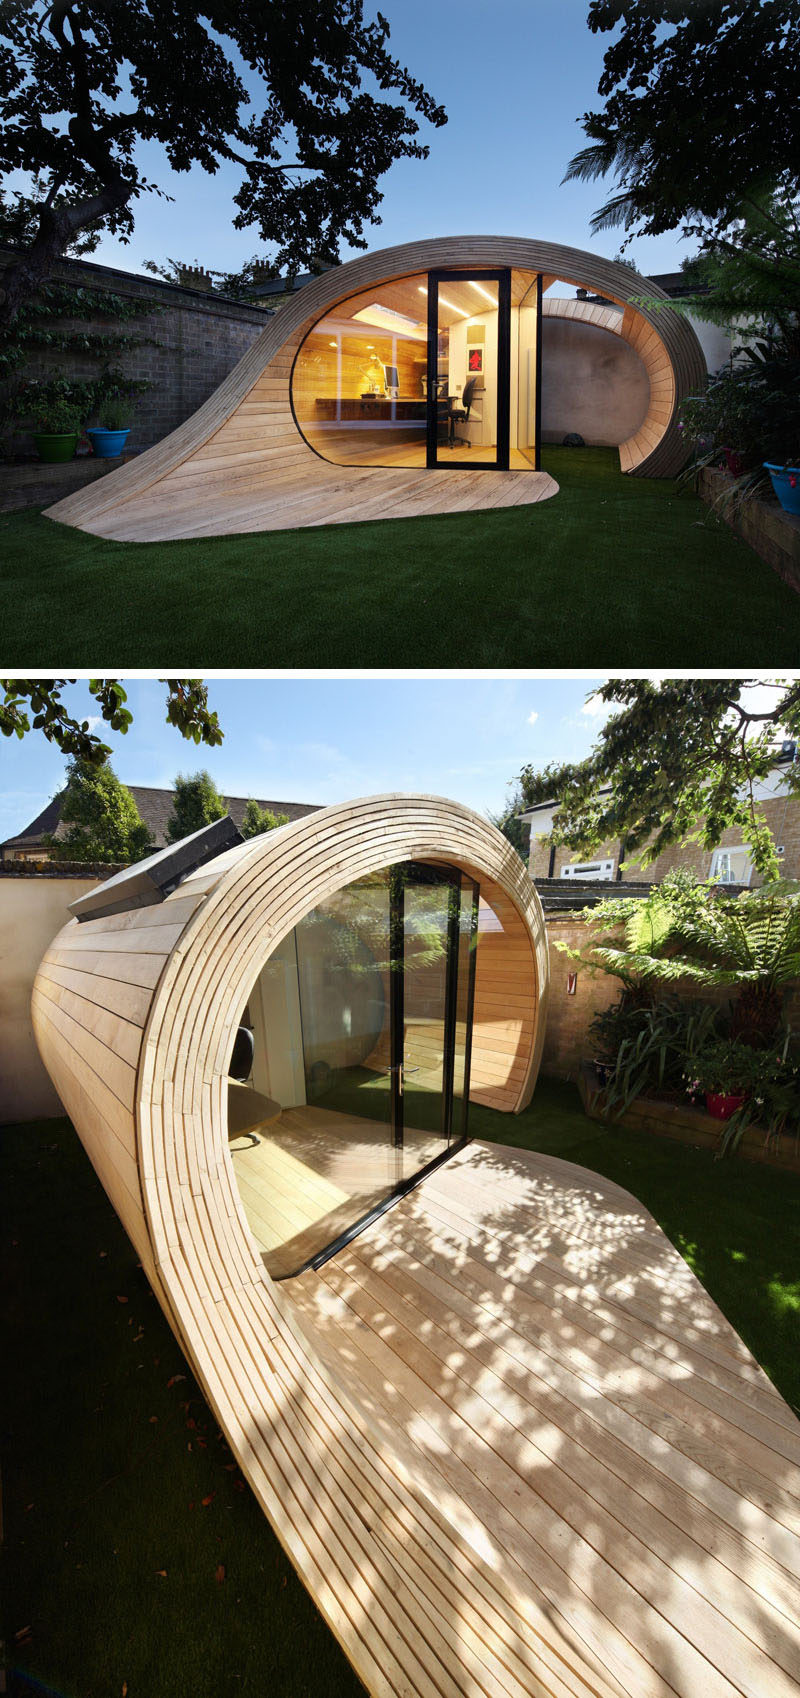 A sculptural backyard office that looks like a wood wave.